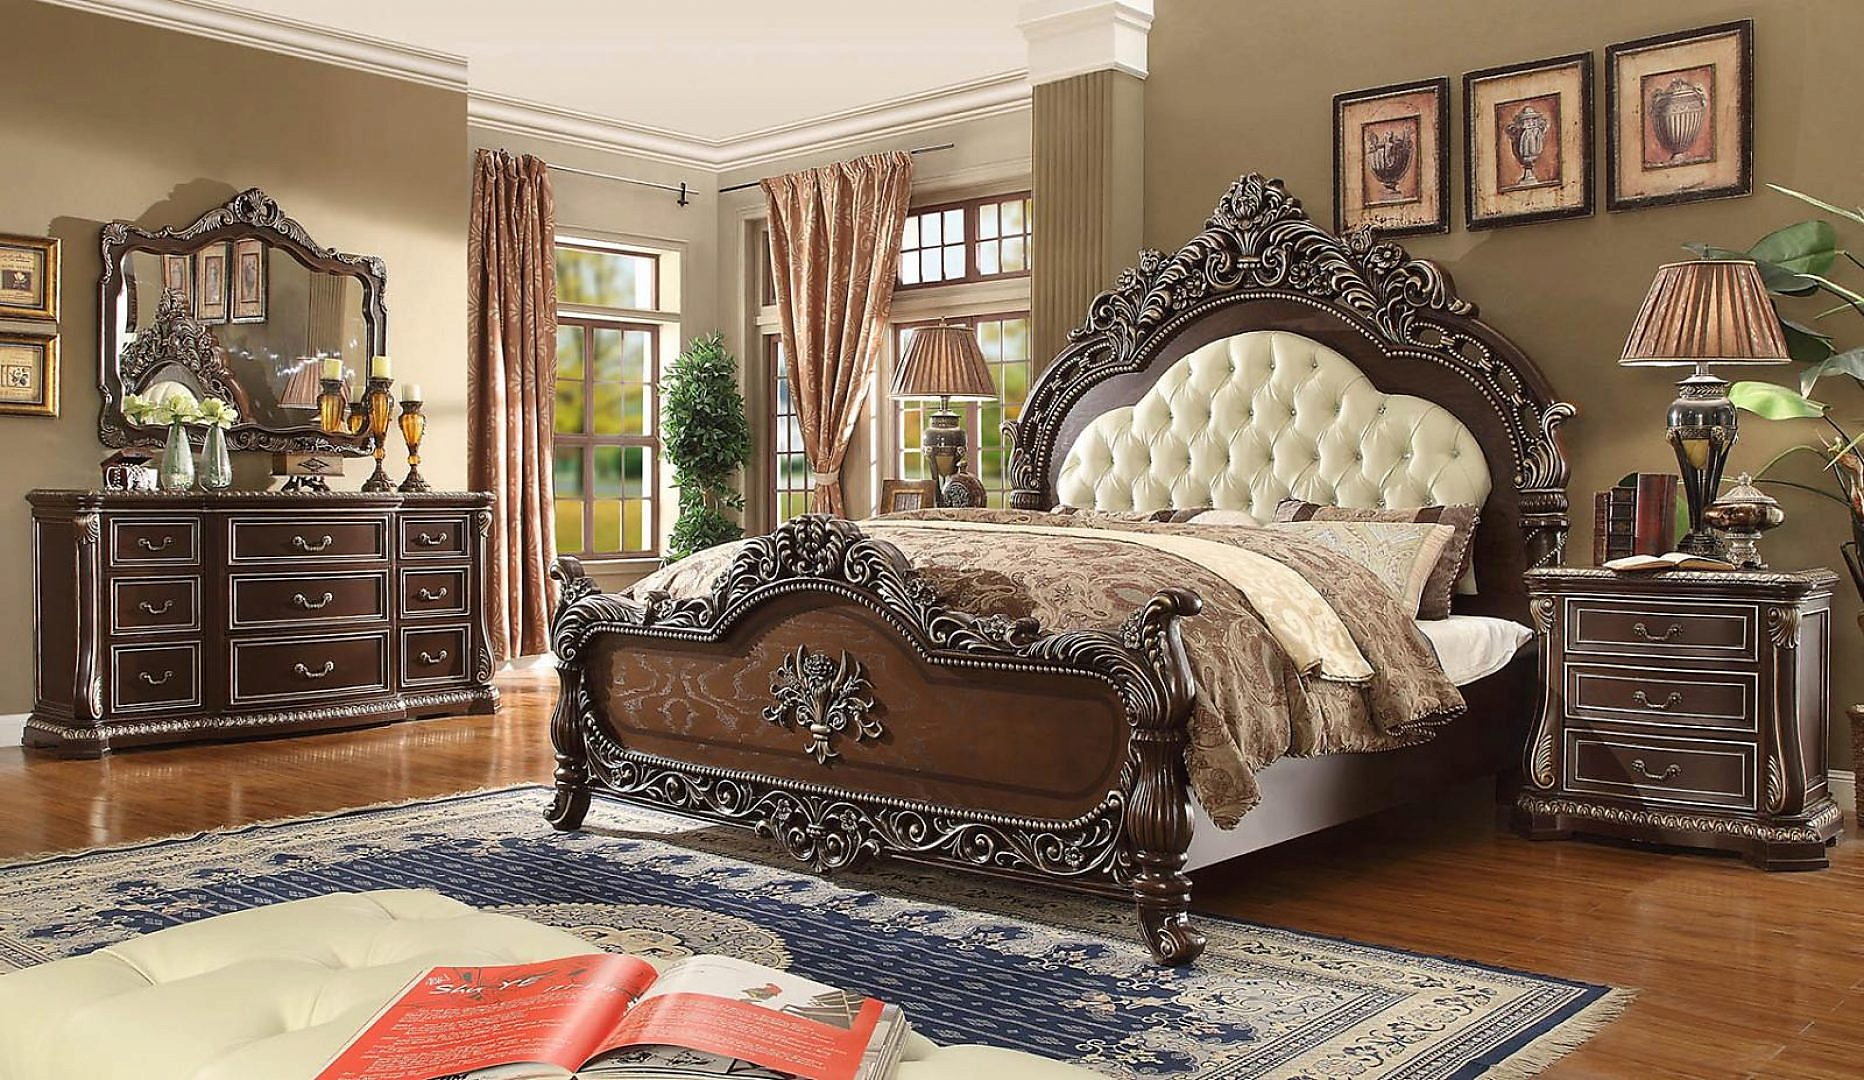 Traditional HD-8013 Eastern King Bedroom Set 6 Pcs in Ivory by Homey Design